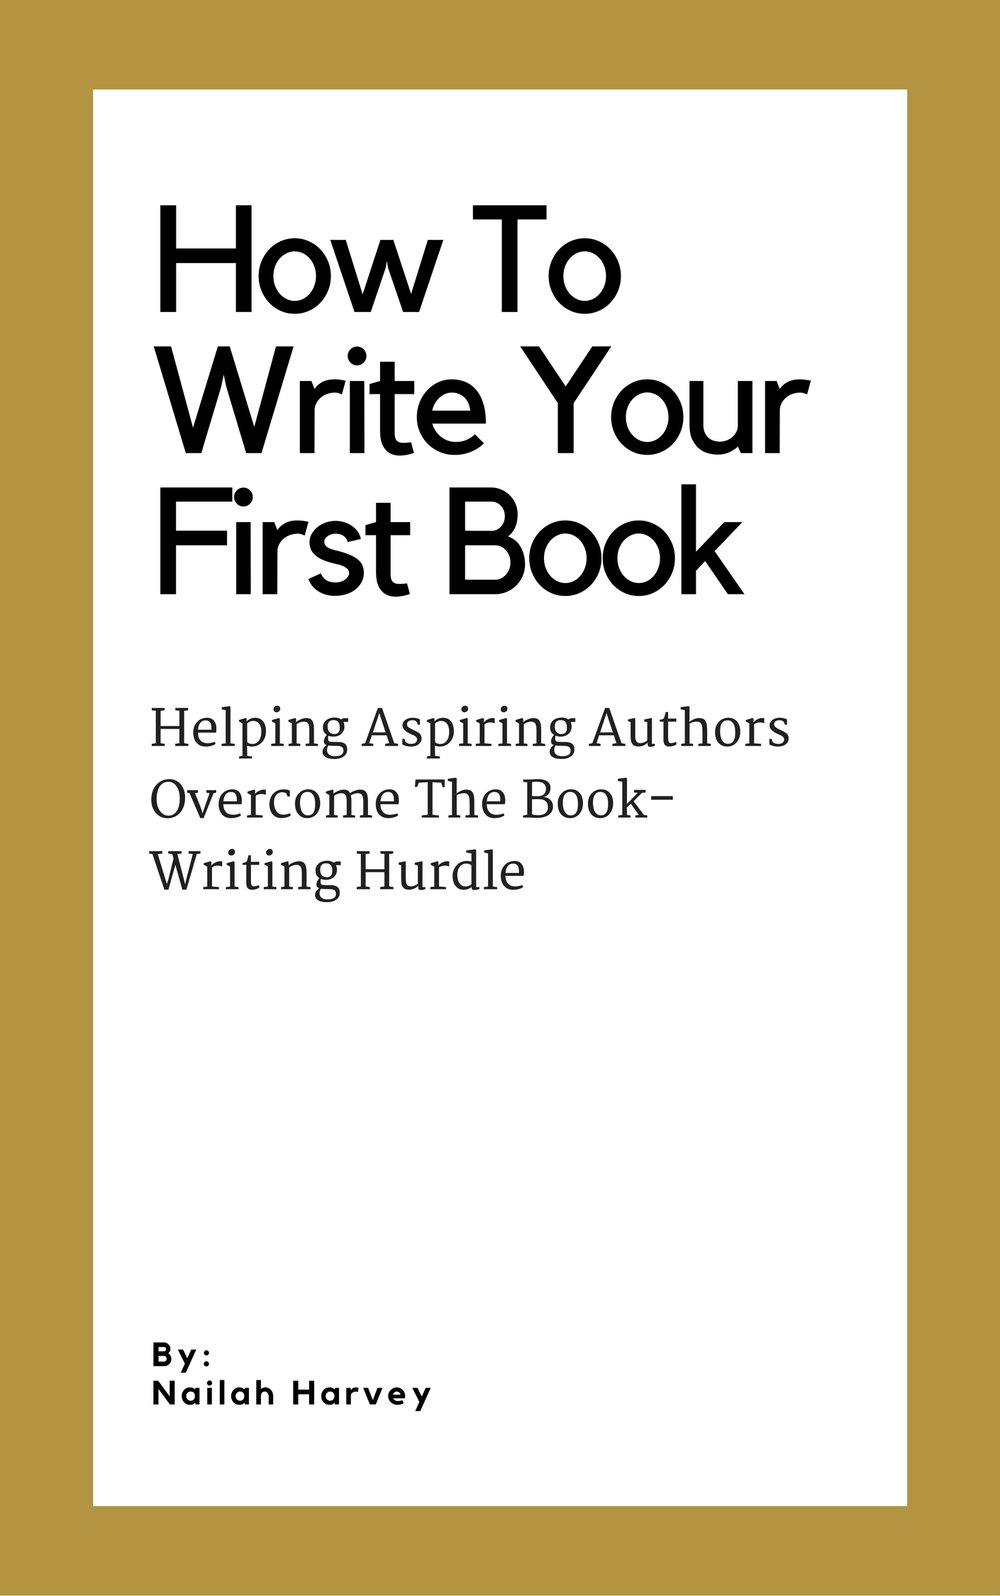 How To Write Your First Book by Nailah Harvey